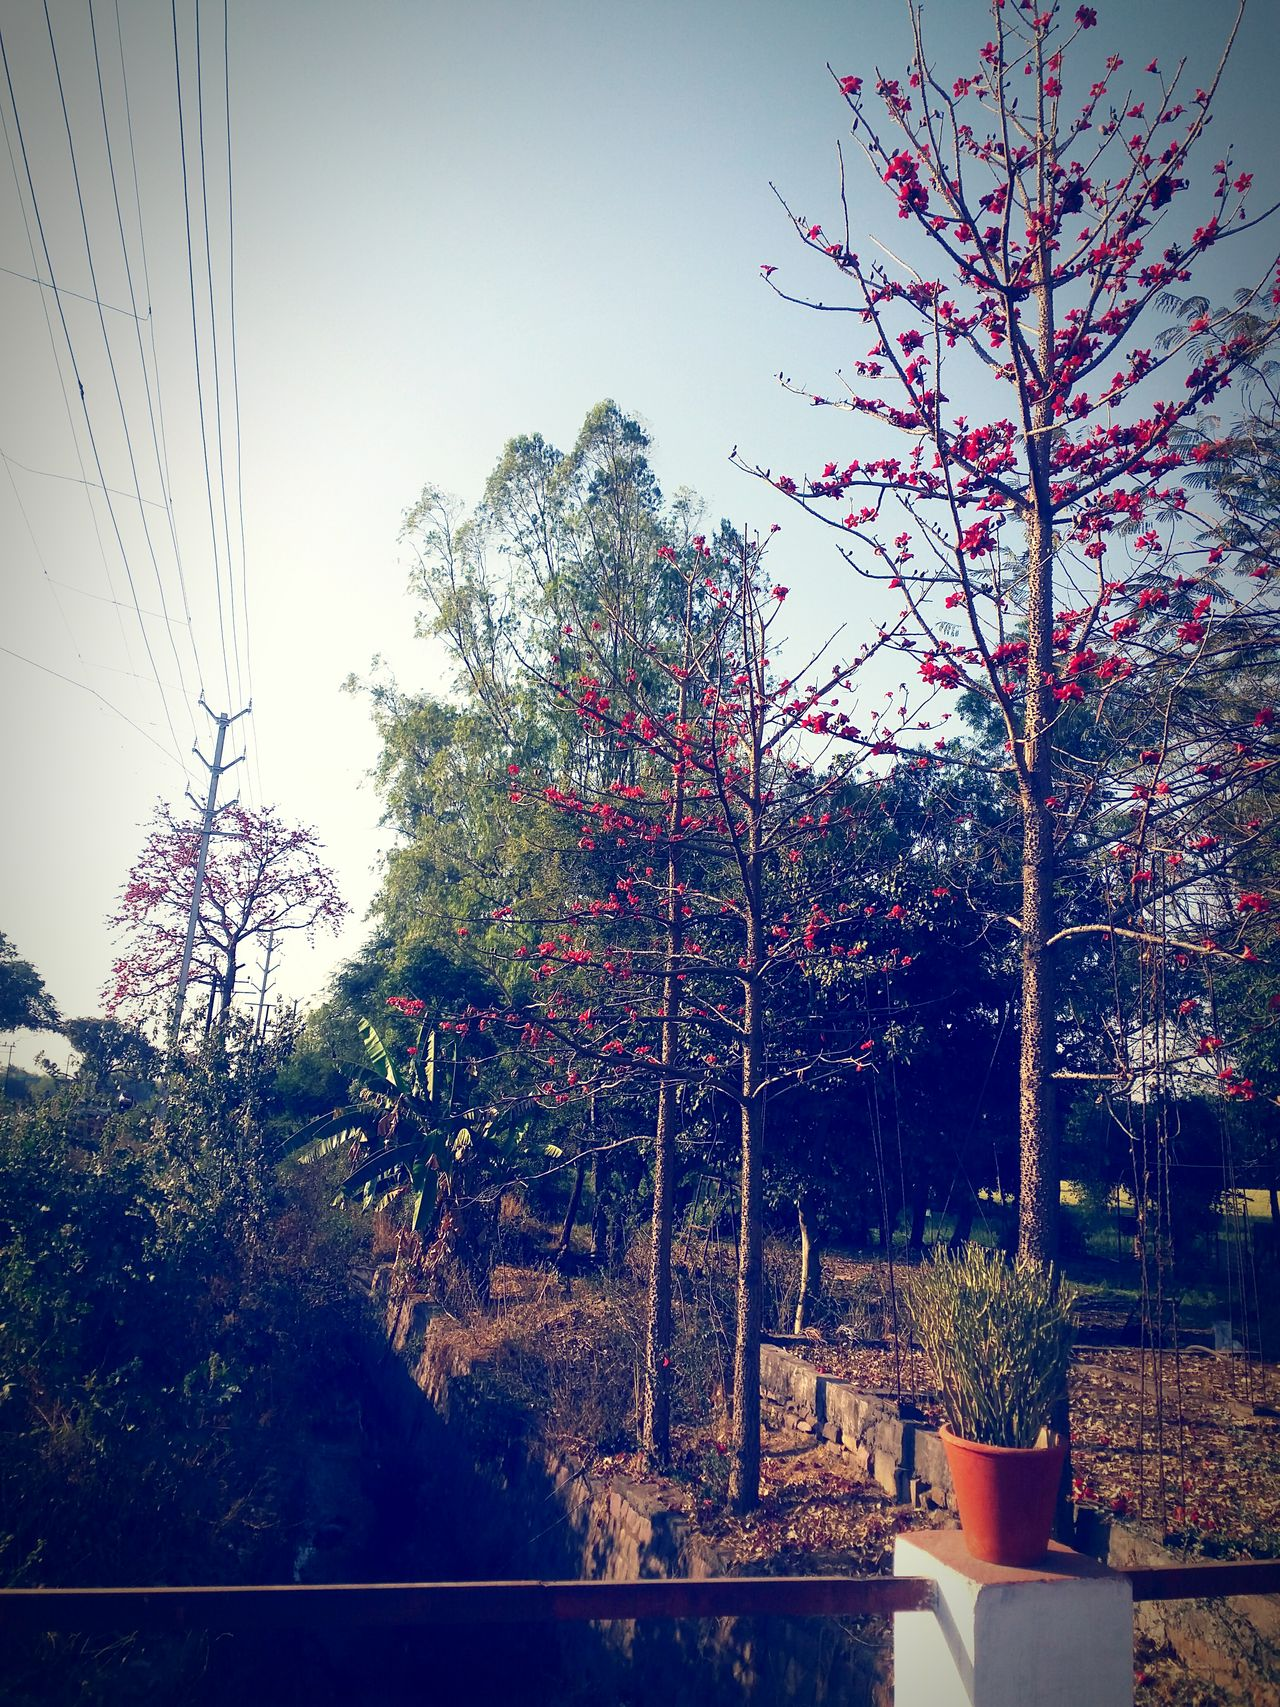 Tree Nature Sky No People Growth Sunset Outdoors Beauty In Nature Outdoors❤ Outdoor Photography Fragility Edited This Myself Tranquility Flowers, Nature And Beauty Beauty In Nature Mobile Photography Nature Freshness Outdoorlife